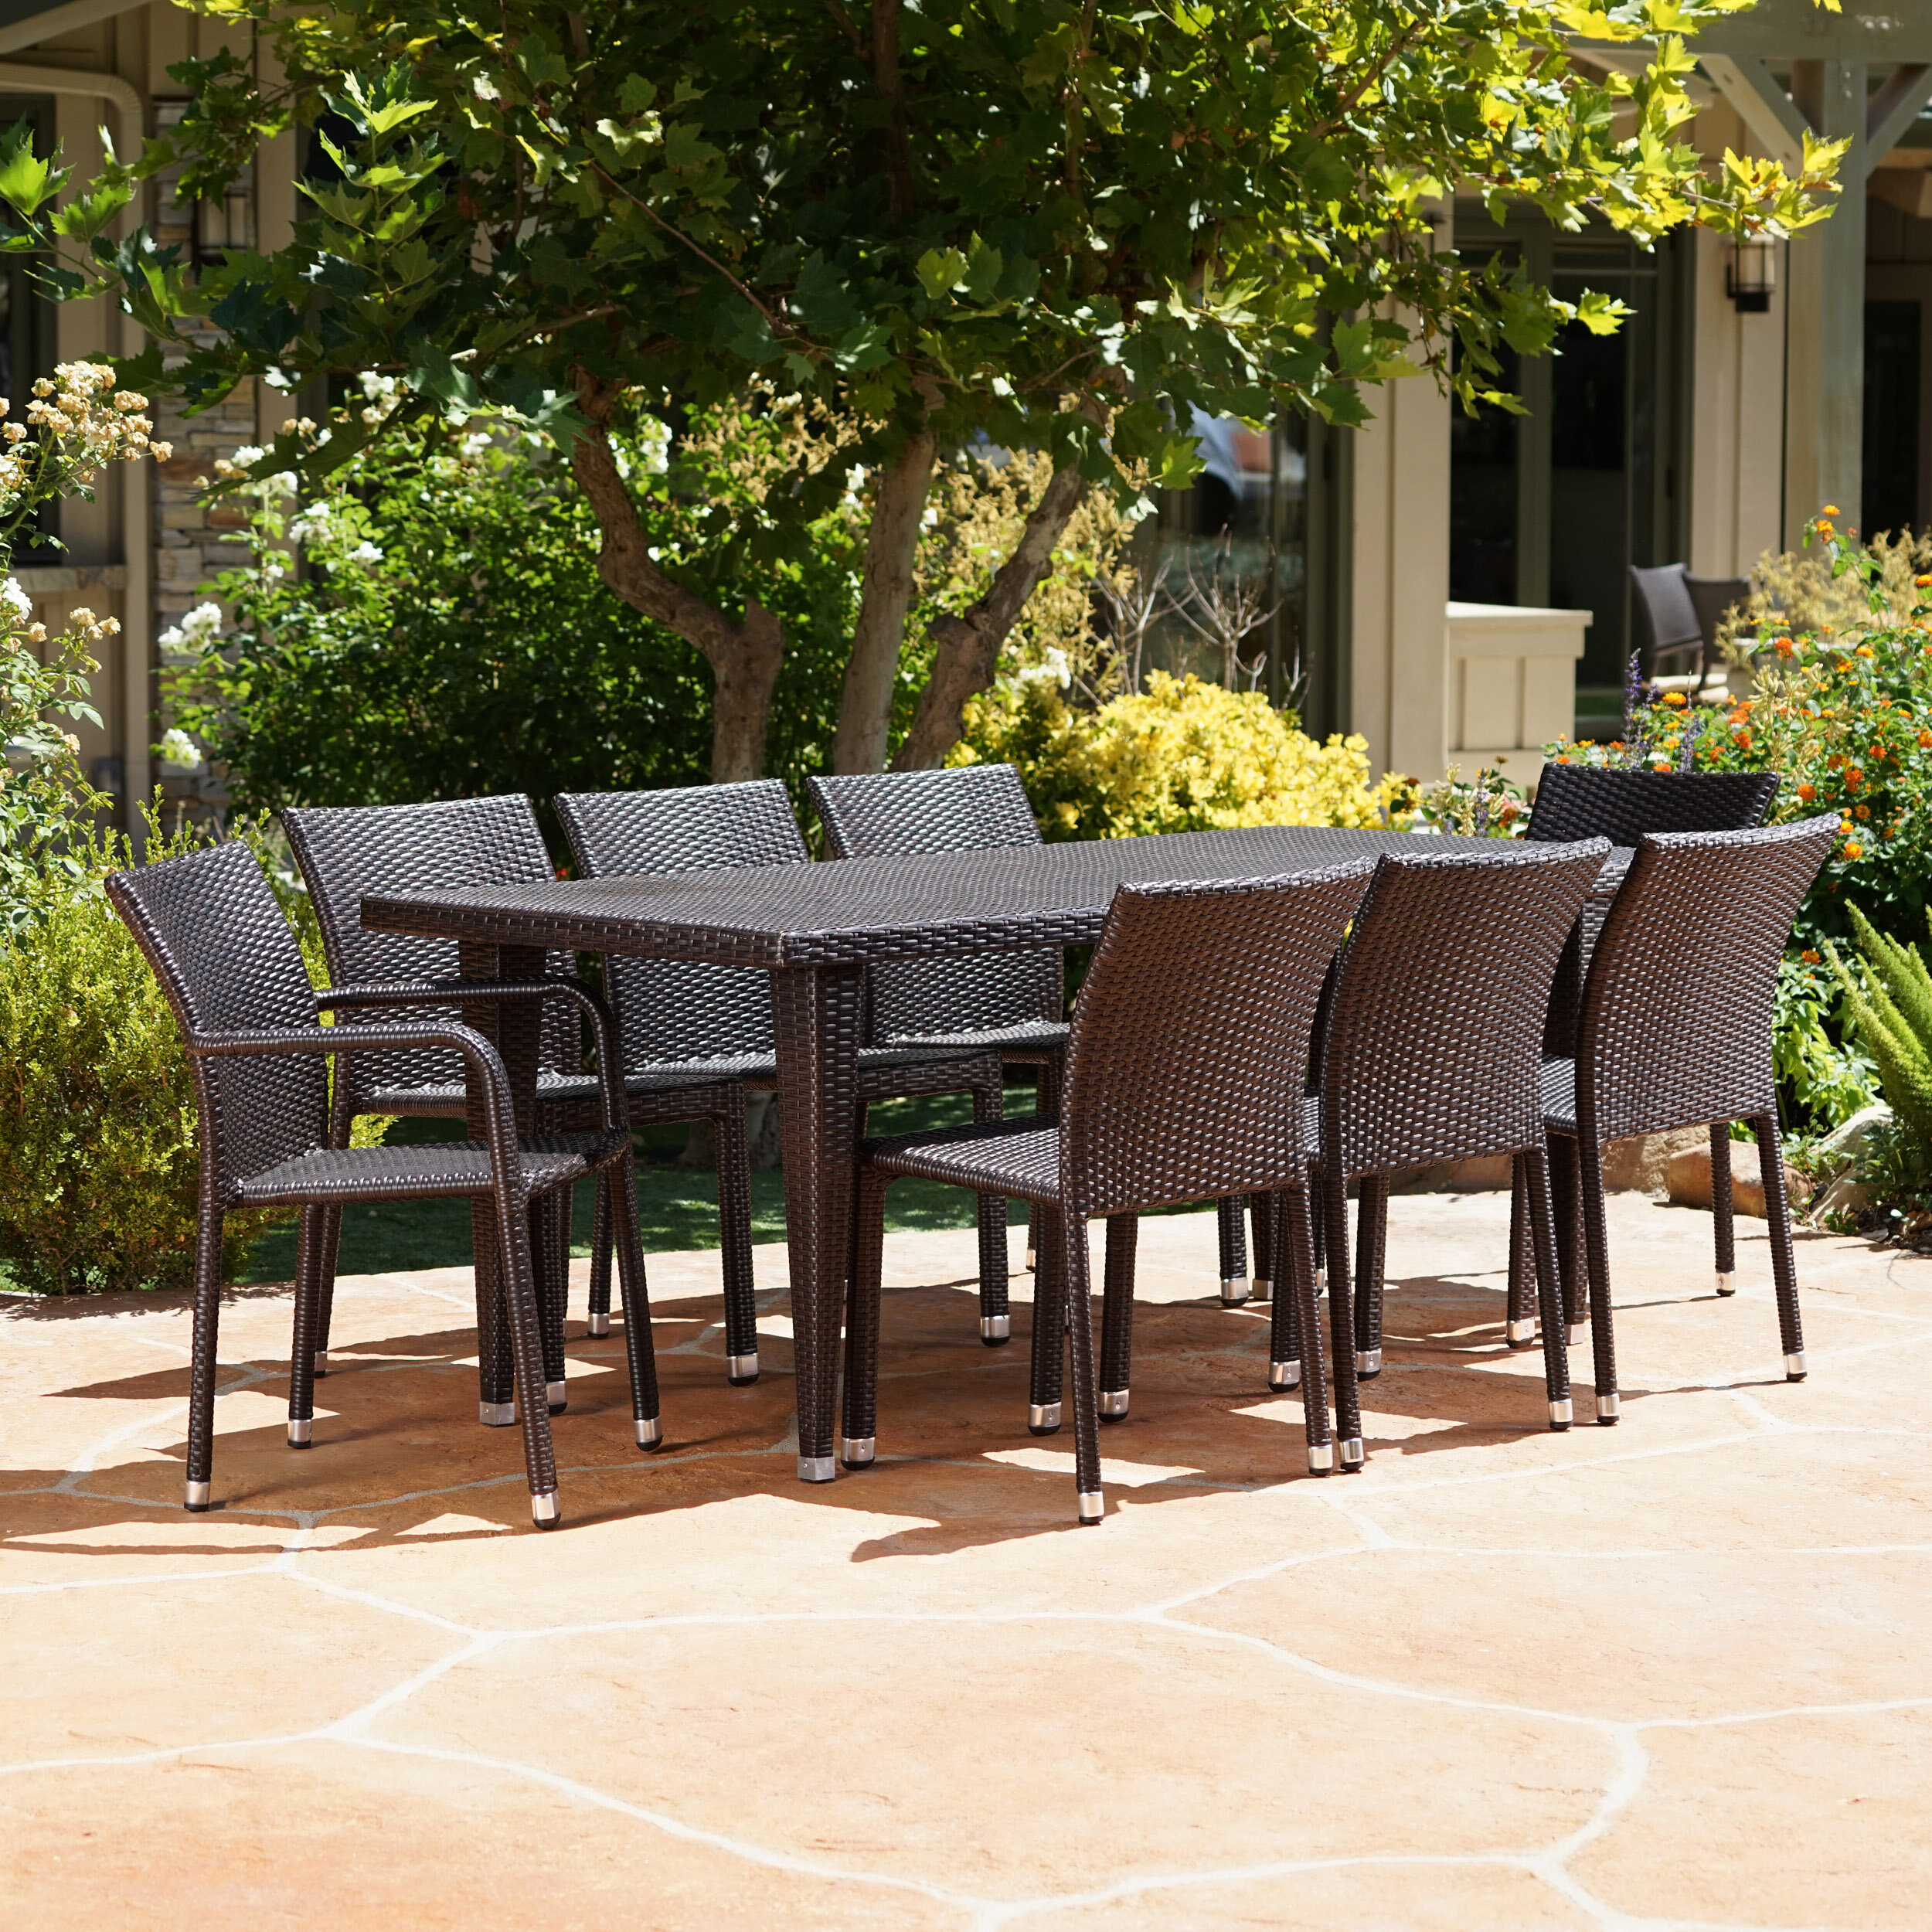 Williston Forge Kaila Outdoor 9 Piece Wicker Dining Set & Reviews